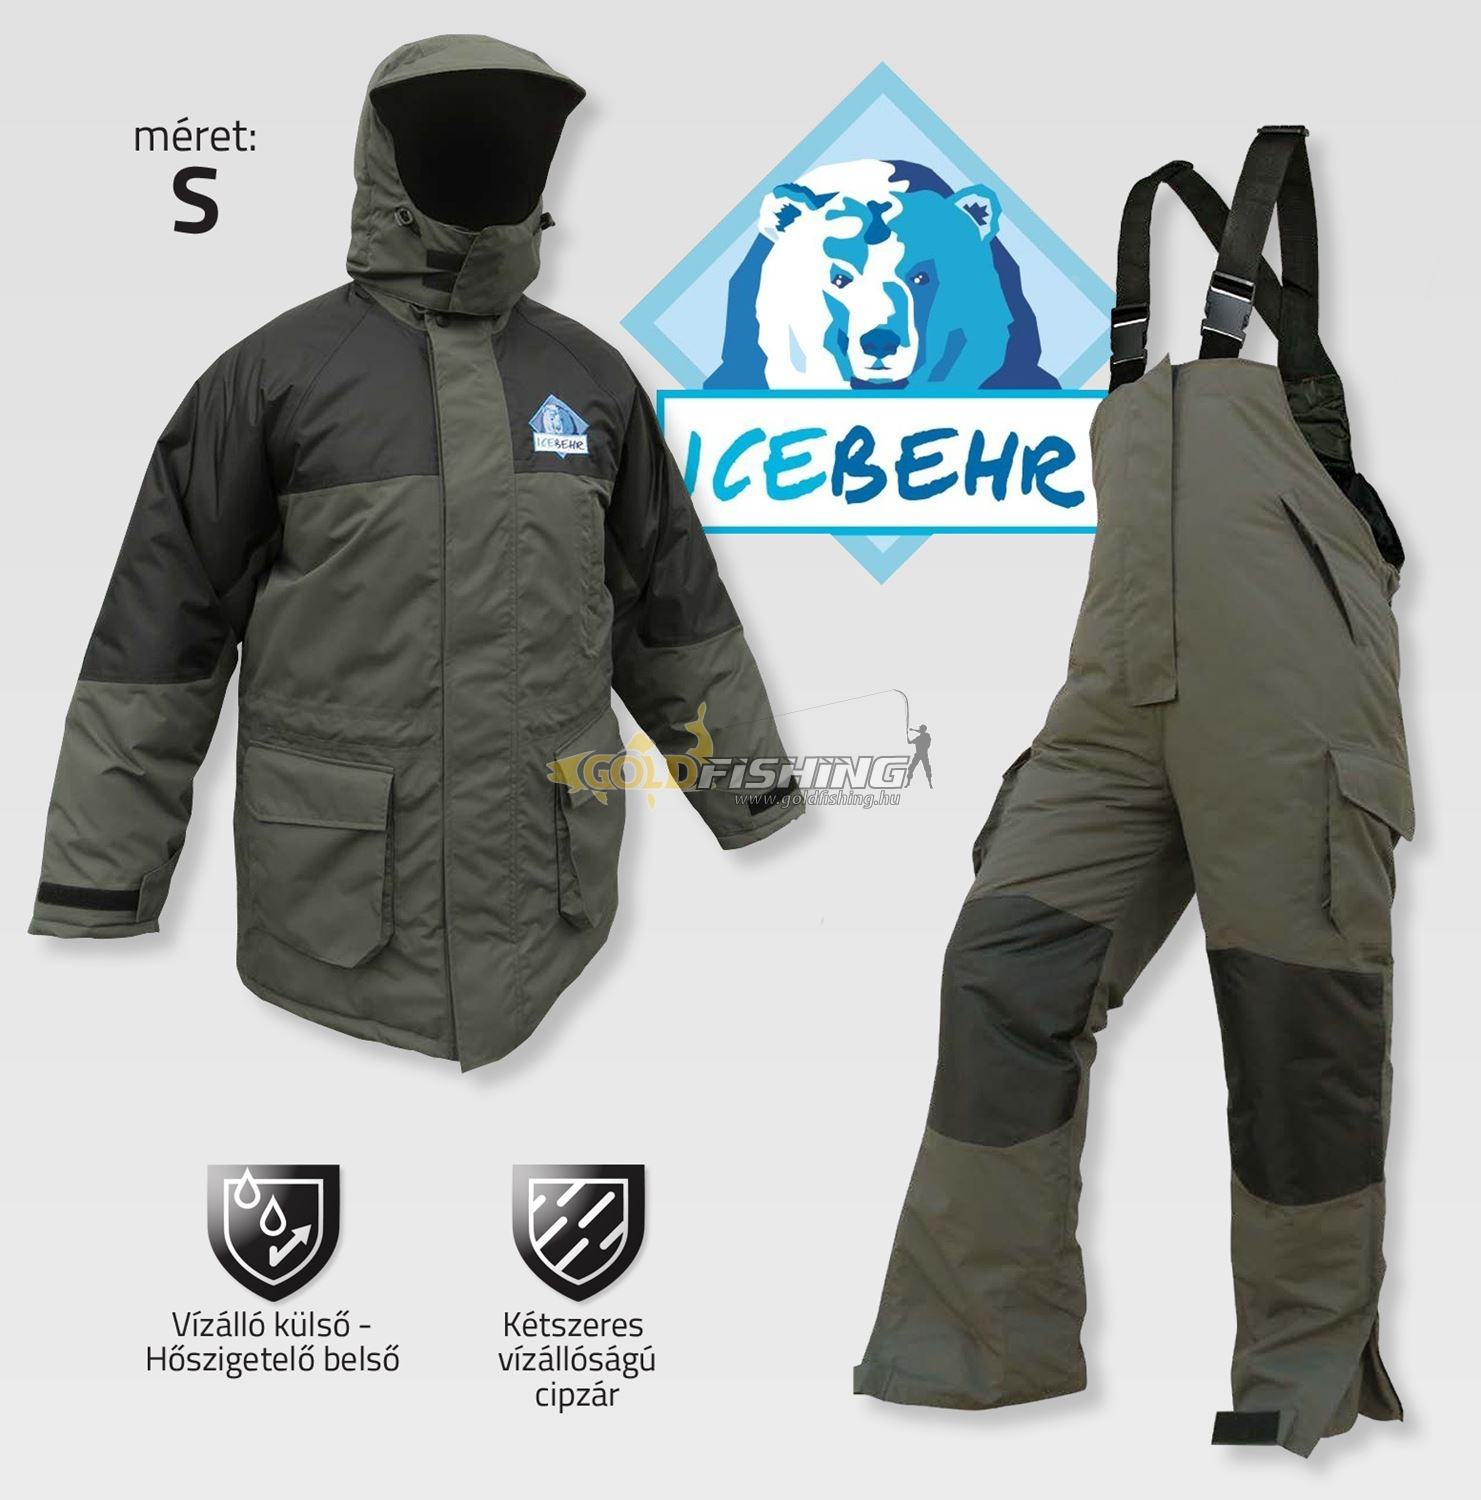 BEHR, IceBehr Extreme thermoruha   S